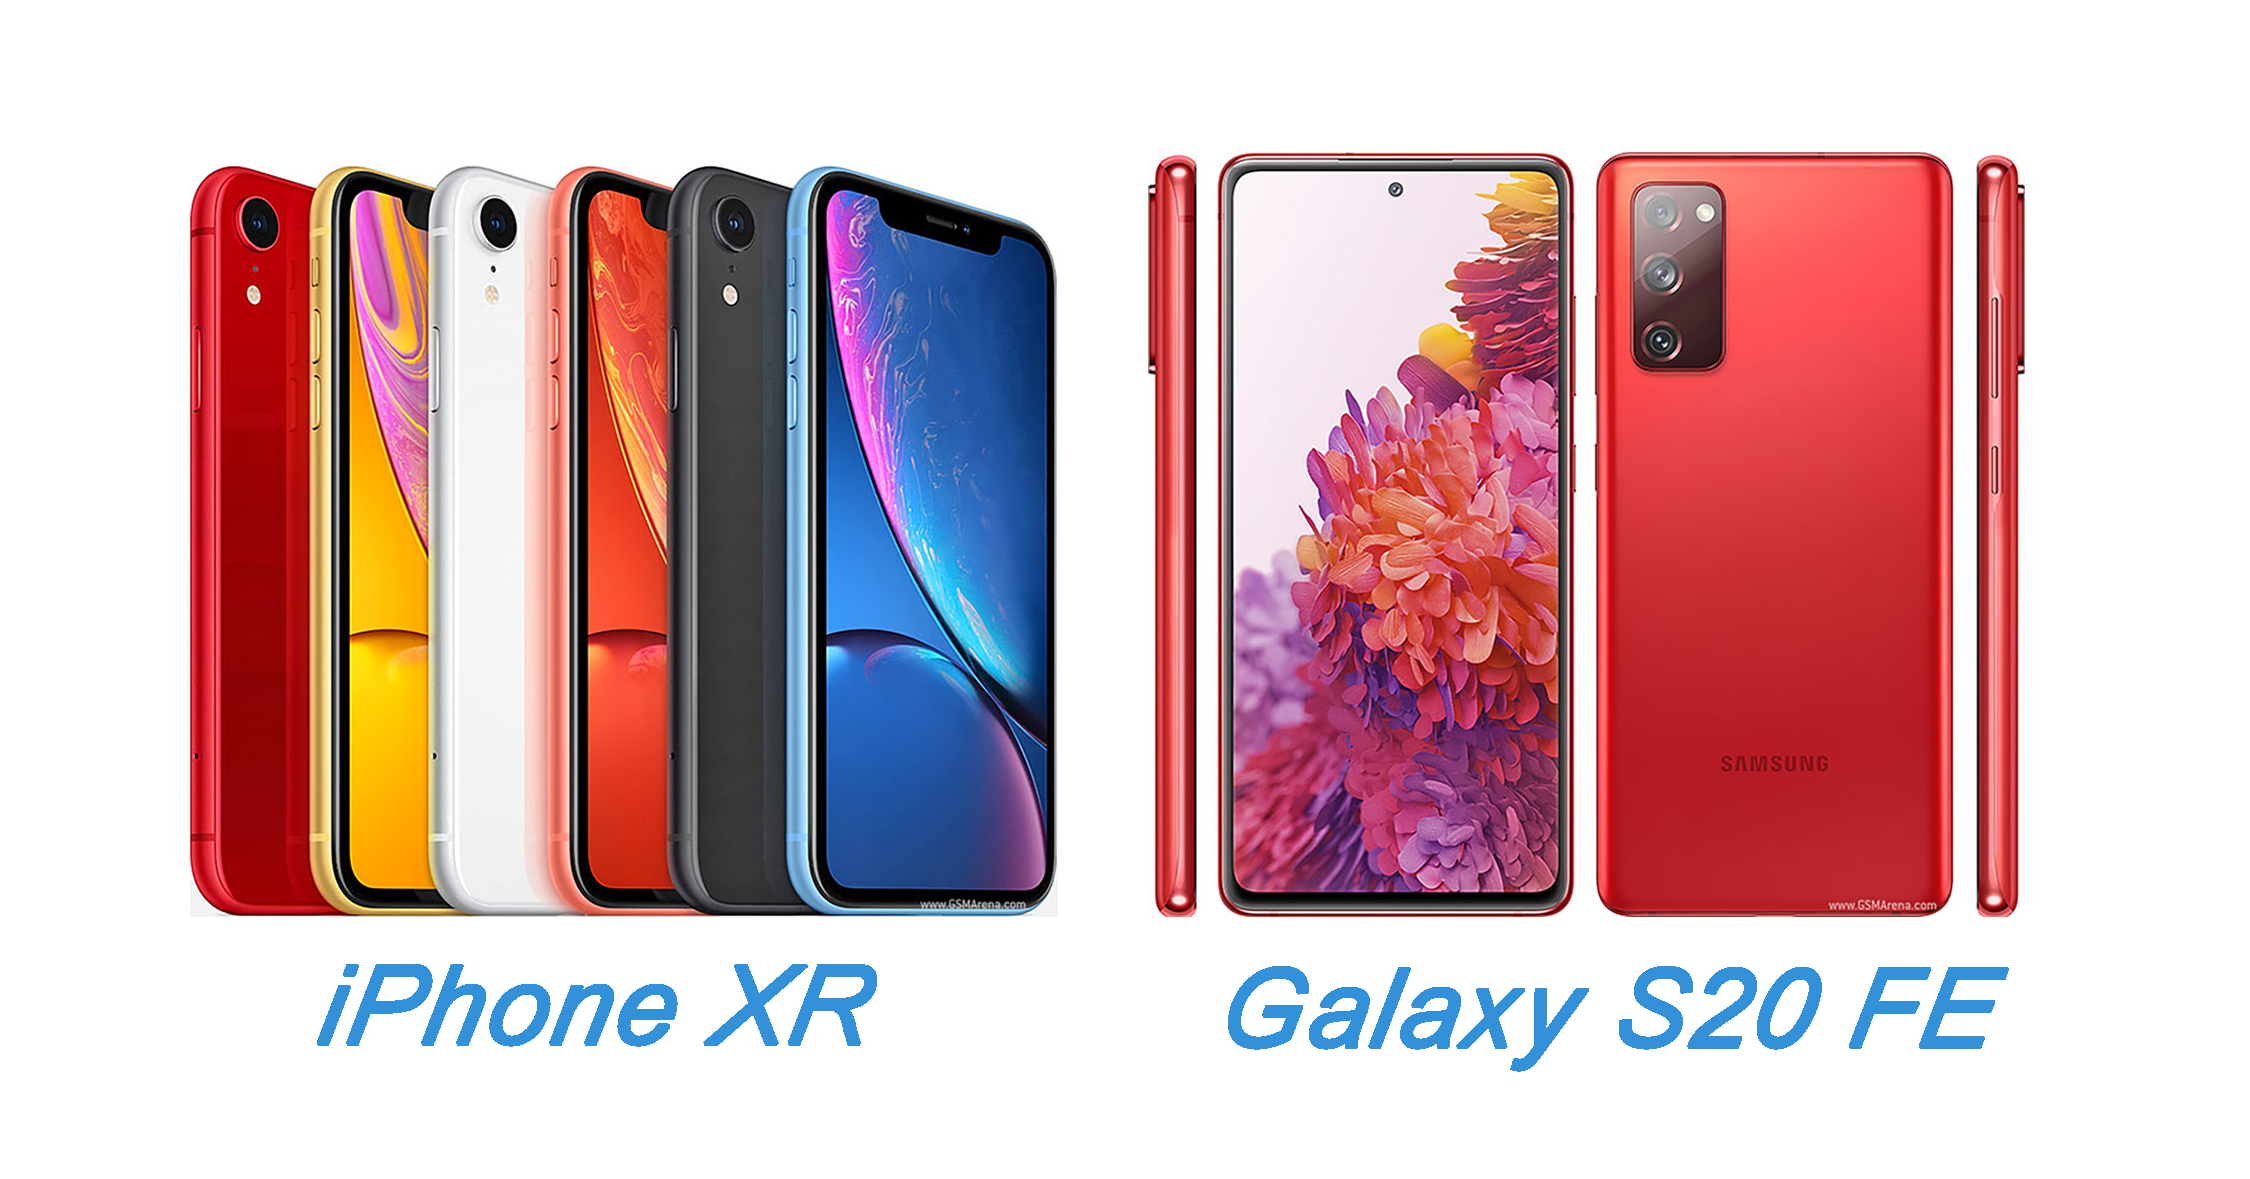 Sforum - Latest technology information page cover-34 Over 11 million VND, choose iPhone XR or Galaxy S20 FE Snapdragon 865 version?